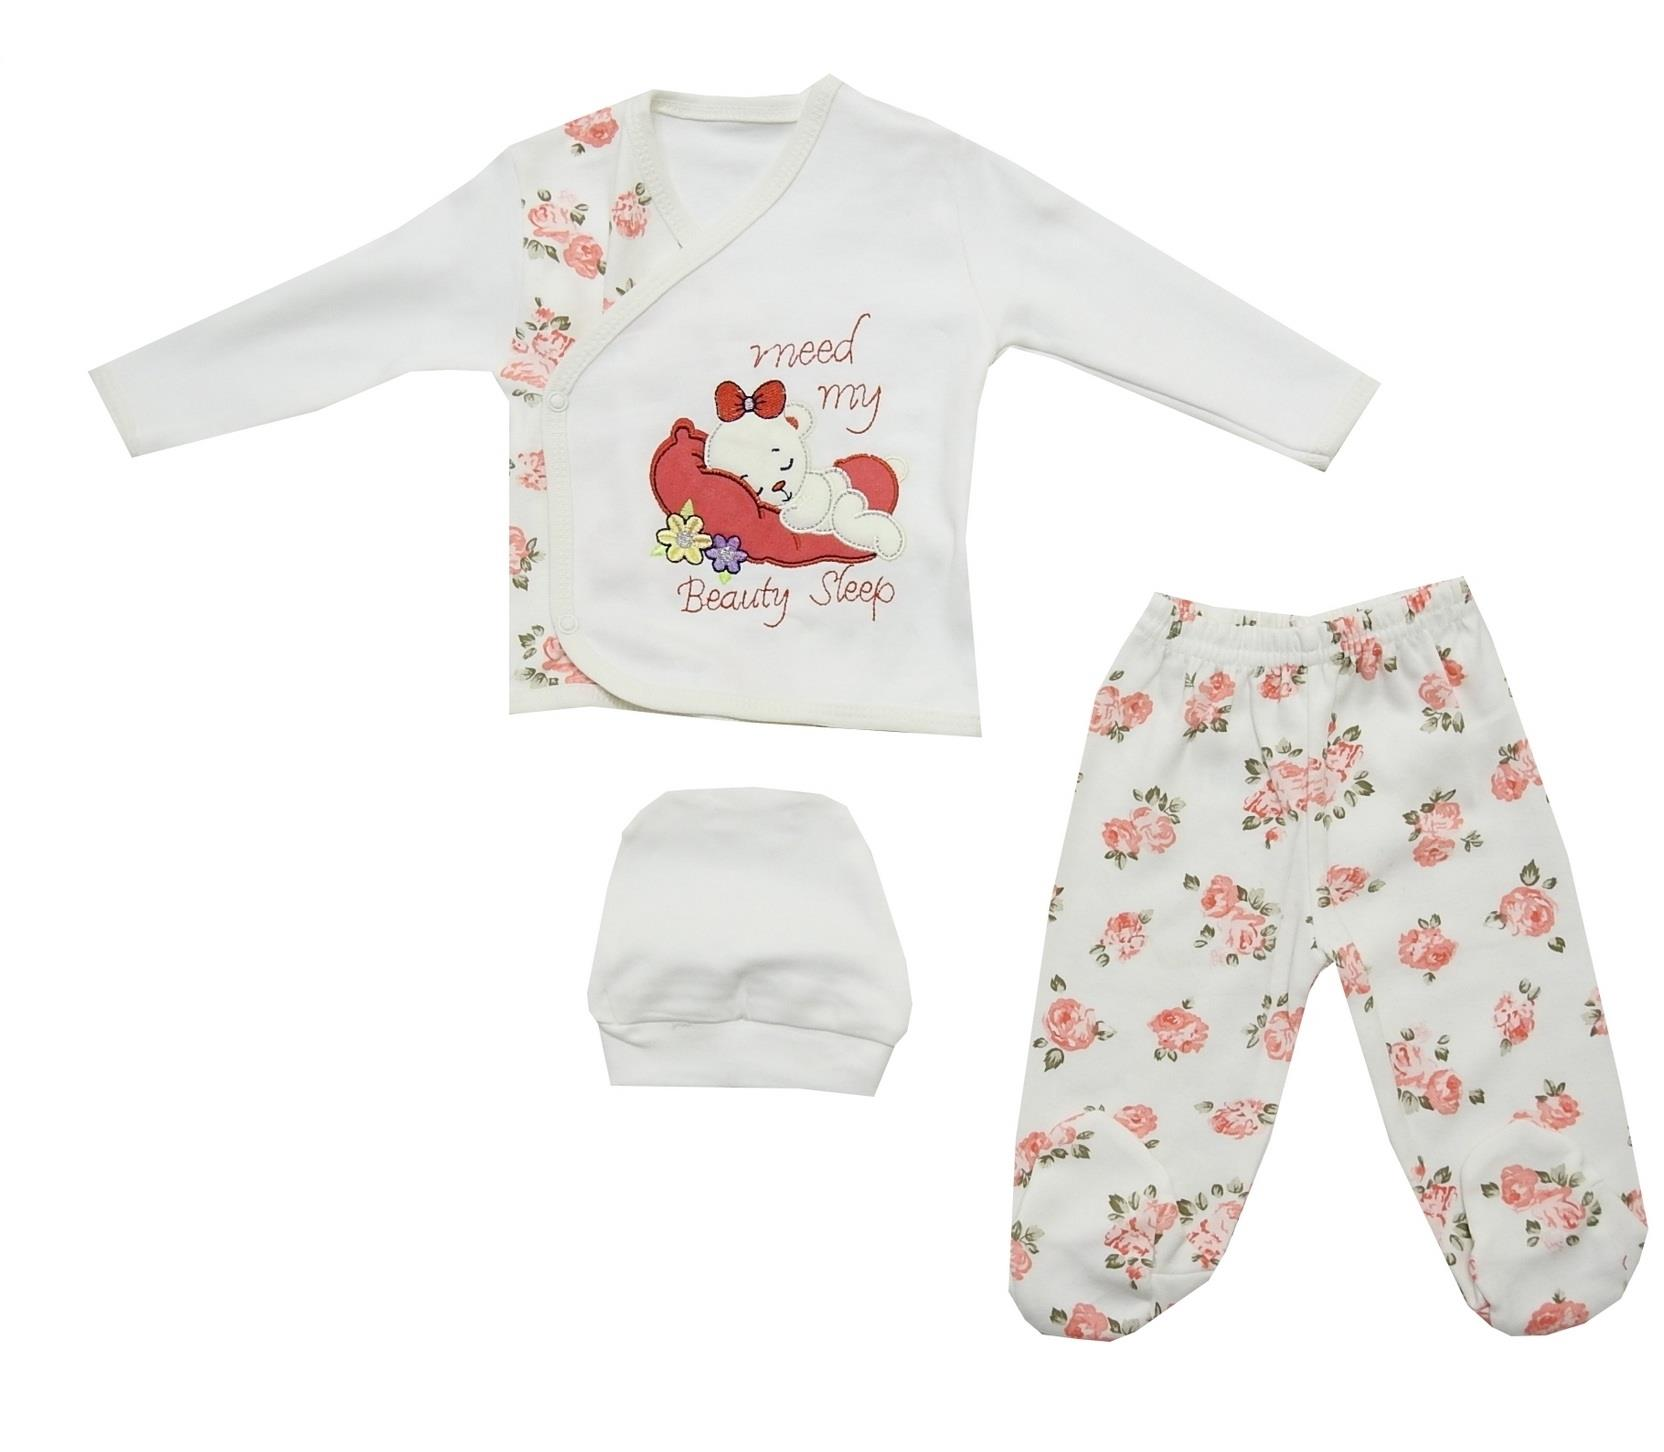 ASSORTED SET FOR NEWBORN (3-6-9 MONTH)